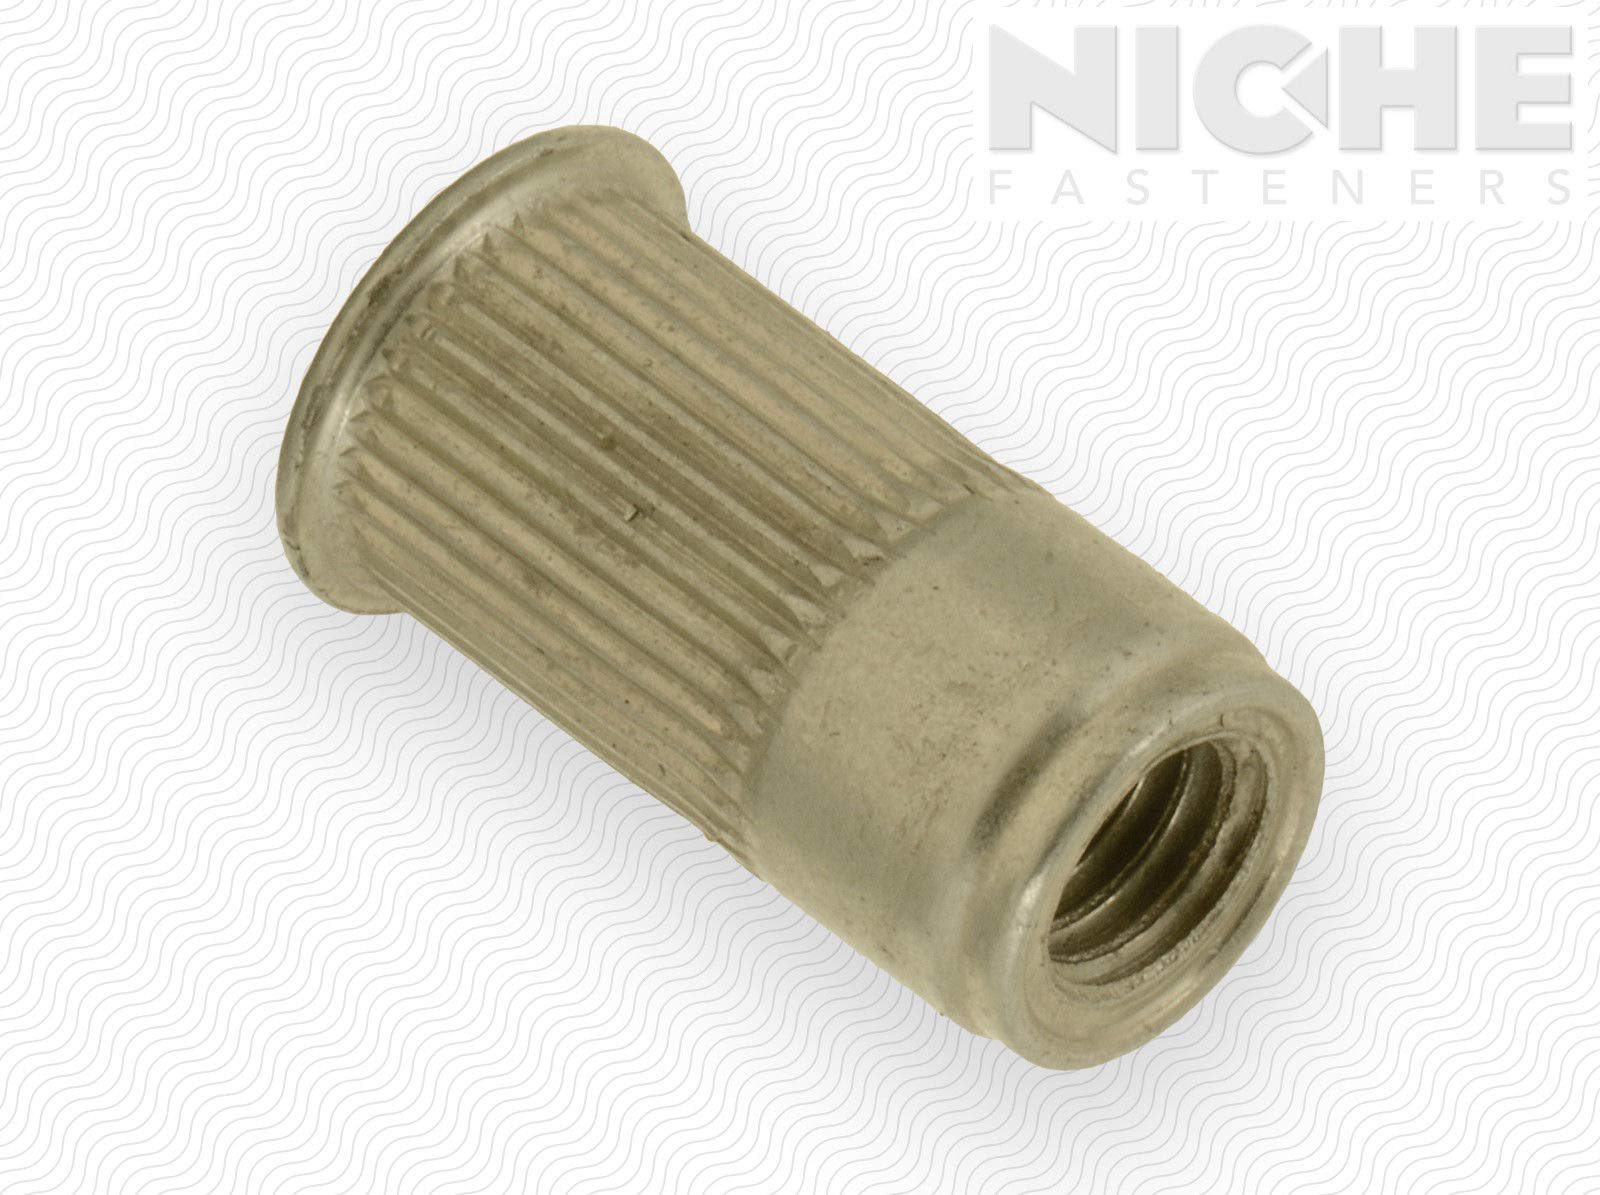 AVK Threaded Insert Knurled AK #10-32 x 225 ZY Triv Open End (170 Pieces)